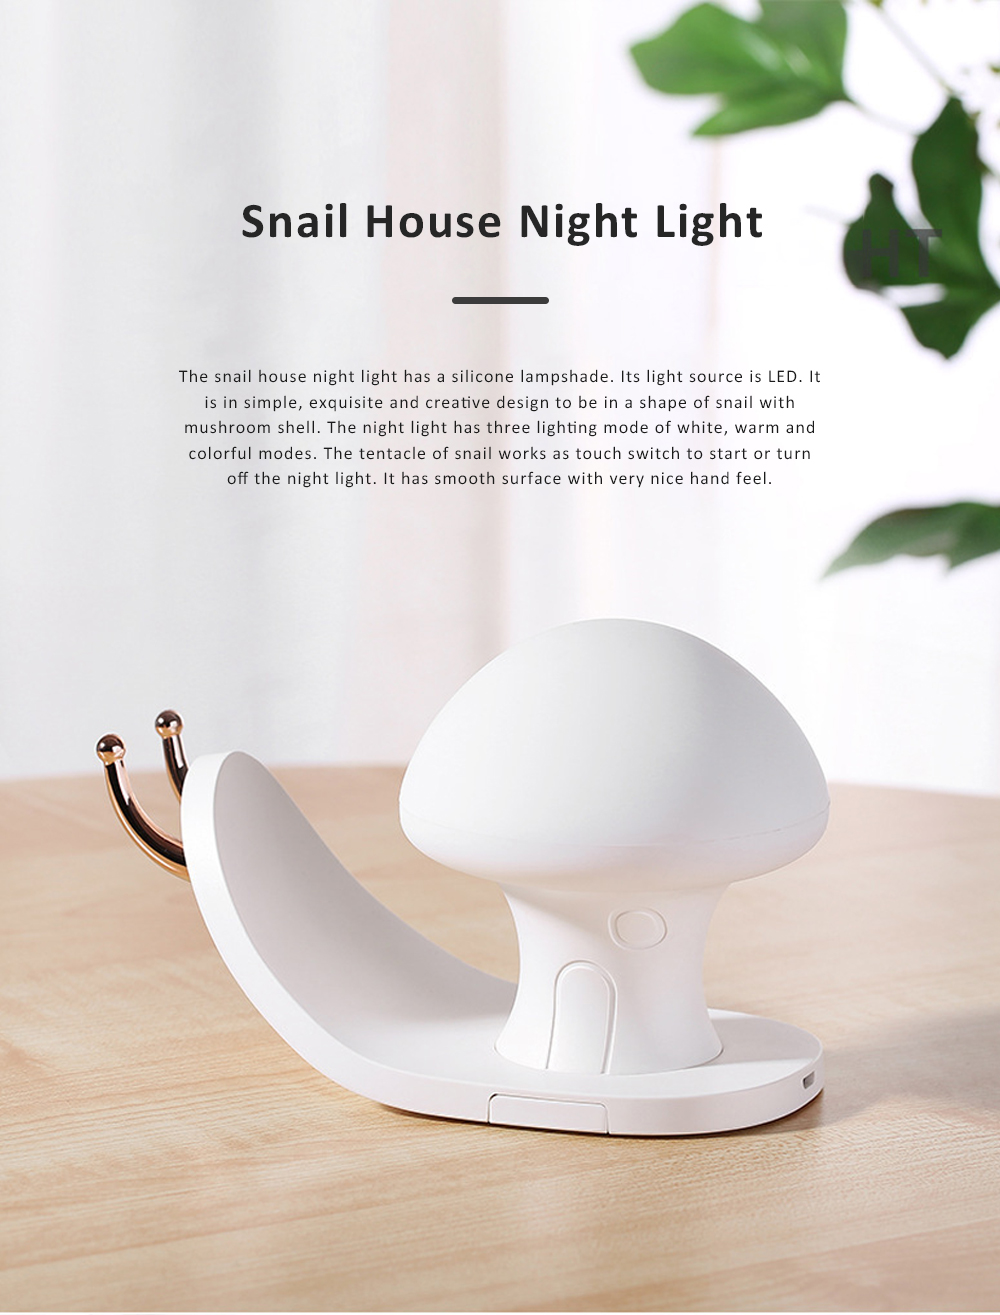 Snail House Night Light Silicone USB Rechargeable Night Lights Multifunctional Phone Holder  Stand Colorful Bedside Ambient Lamp 0